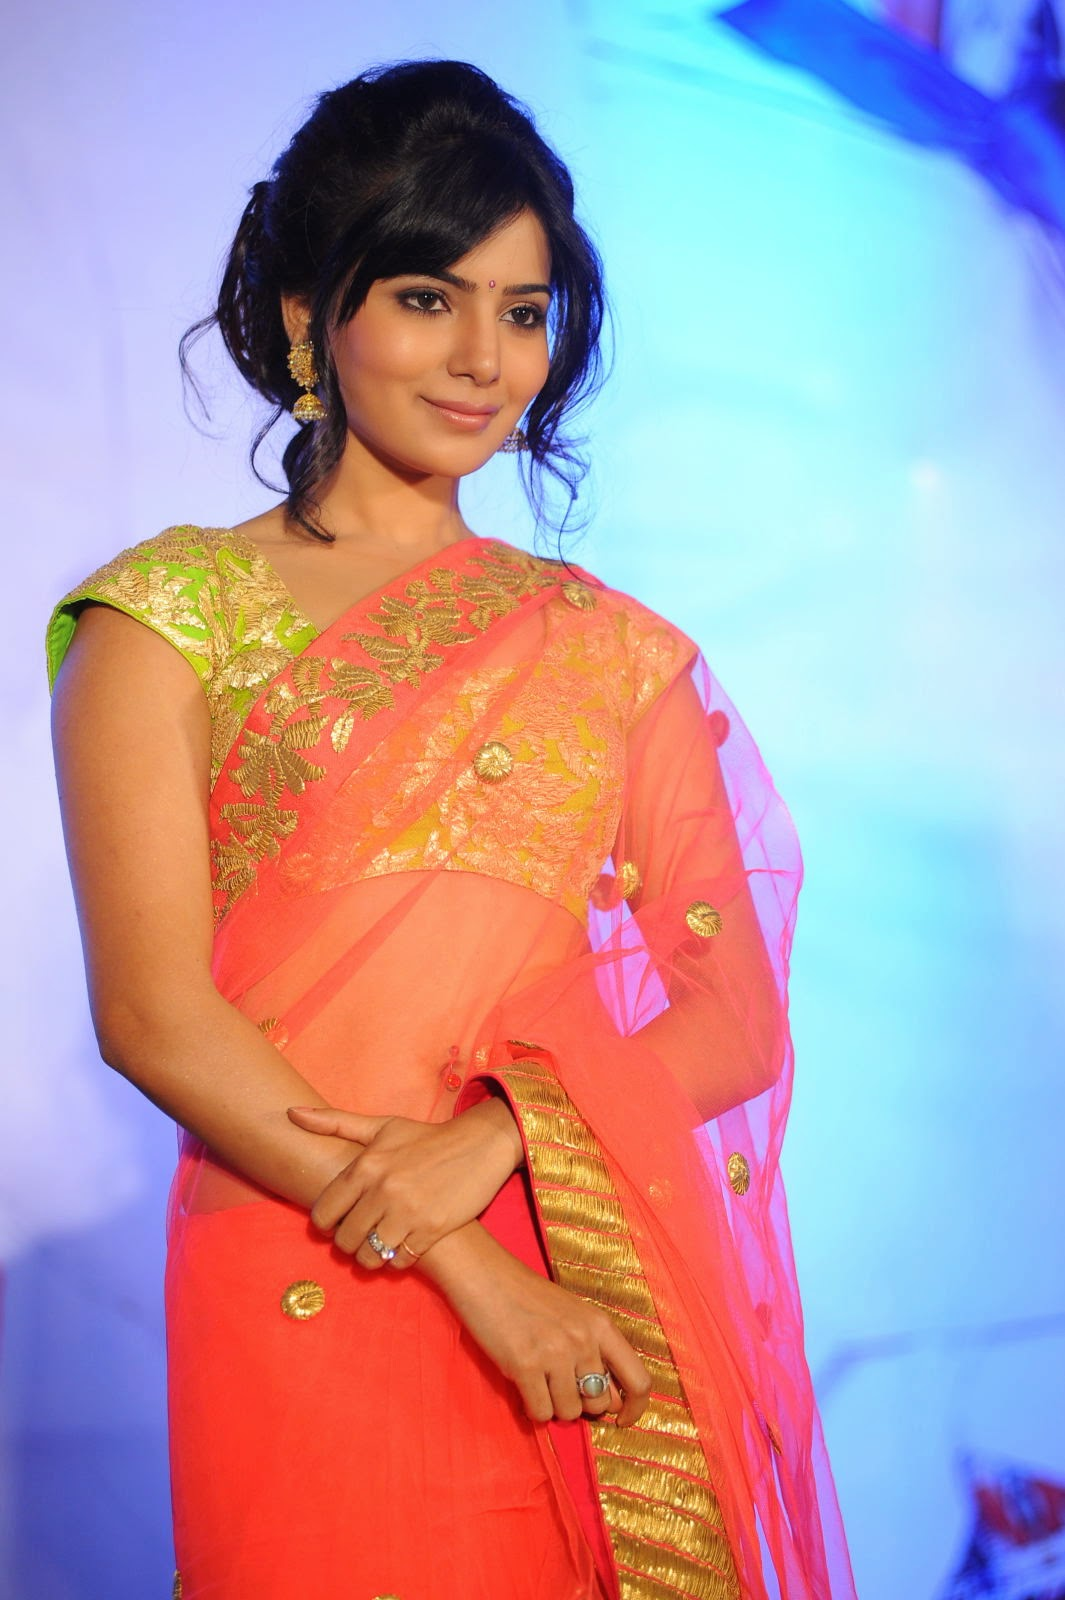 Actress Hd Gallery Samantha Cute Saree Hd Hot Photo